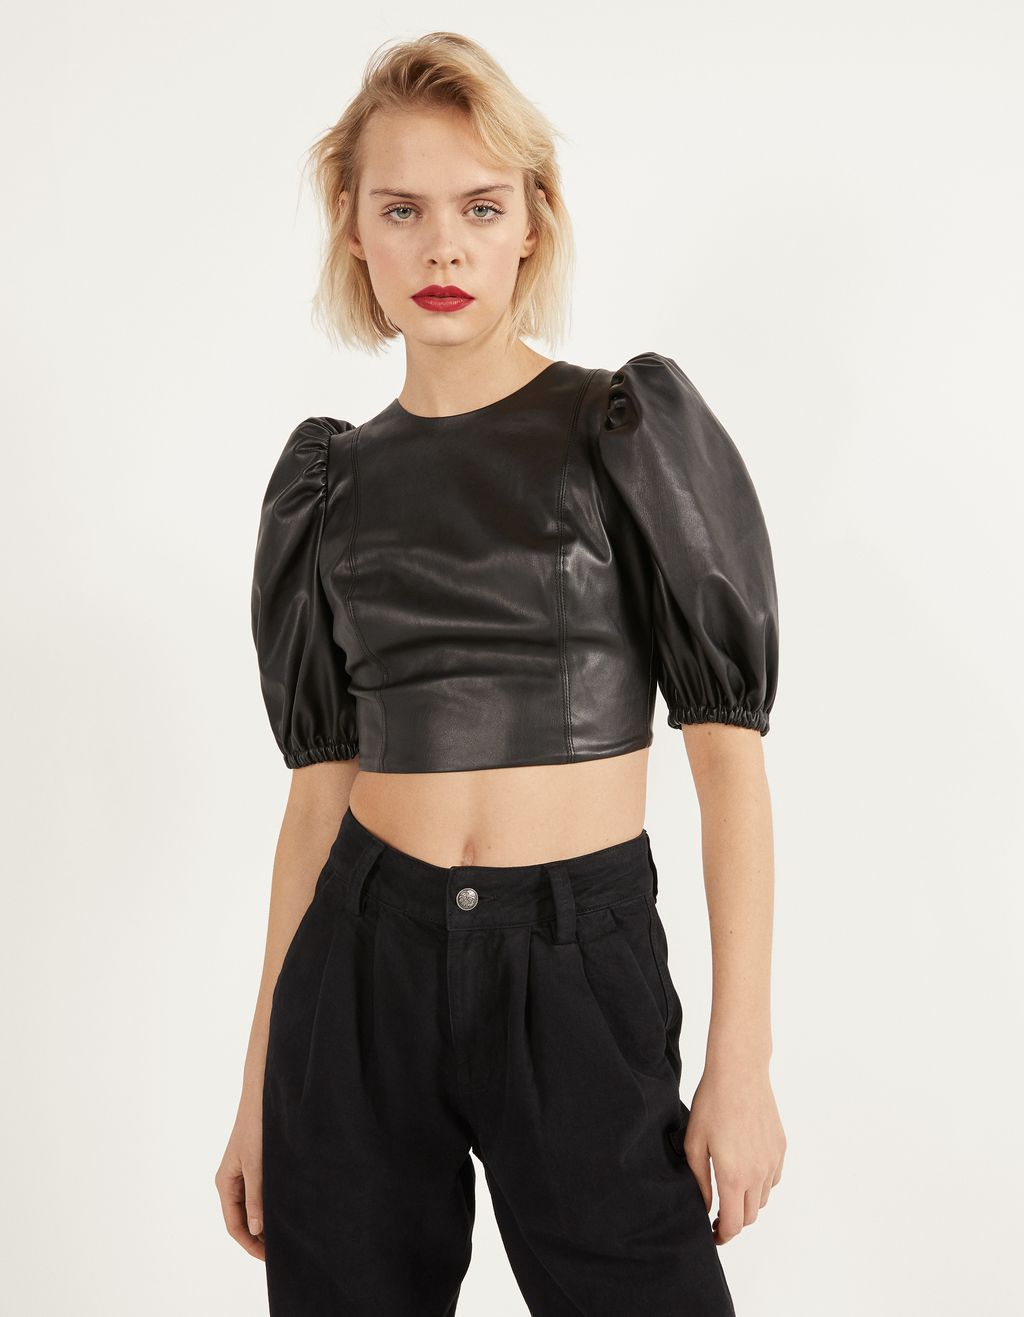 Faux leather blouse with puffed sleeves